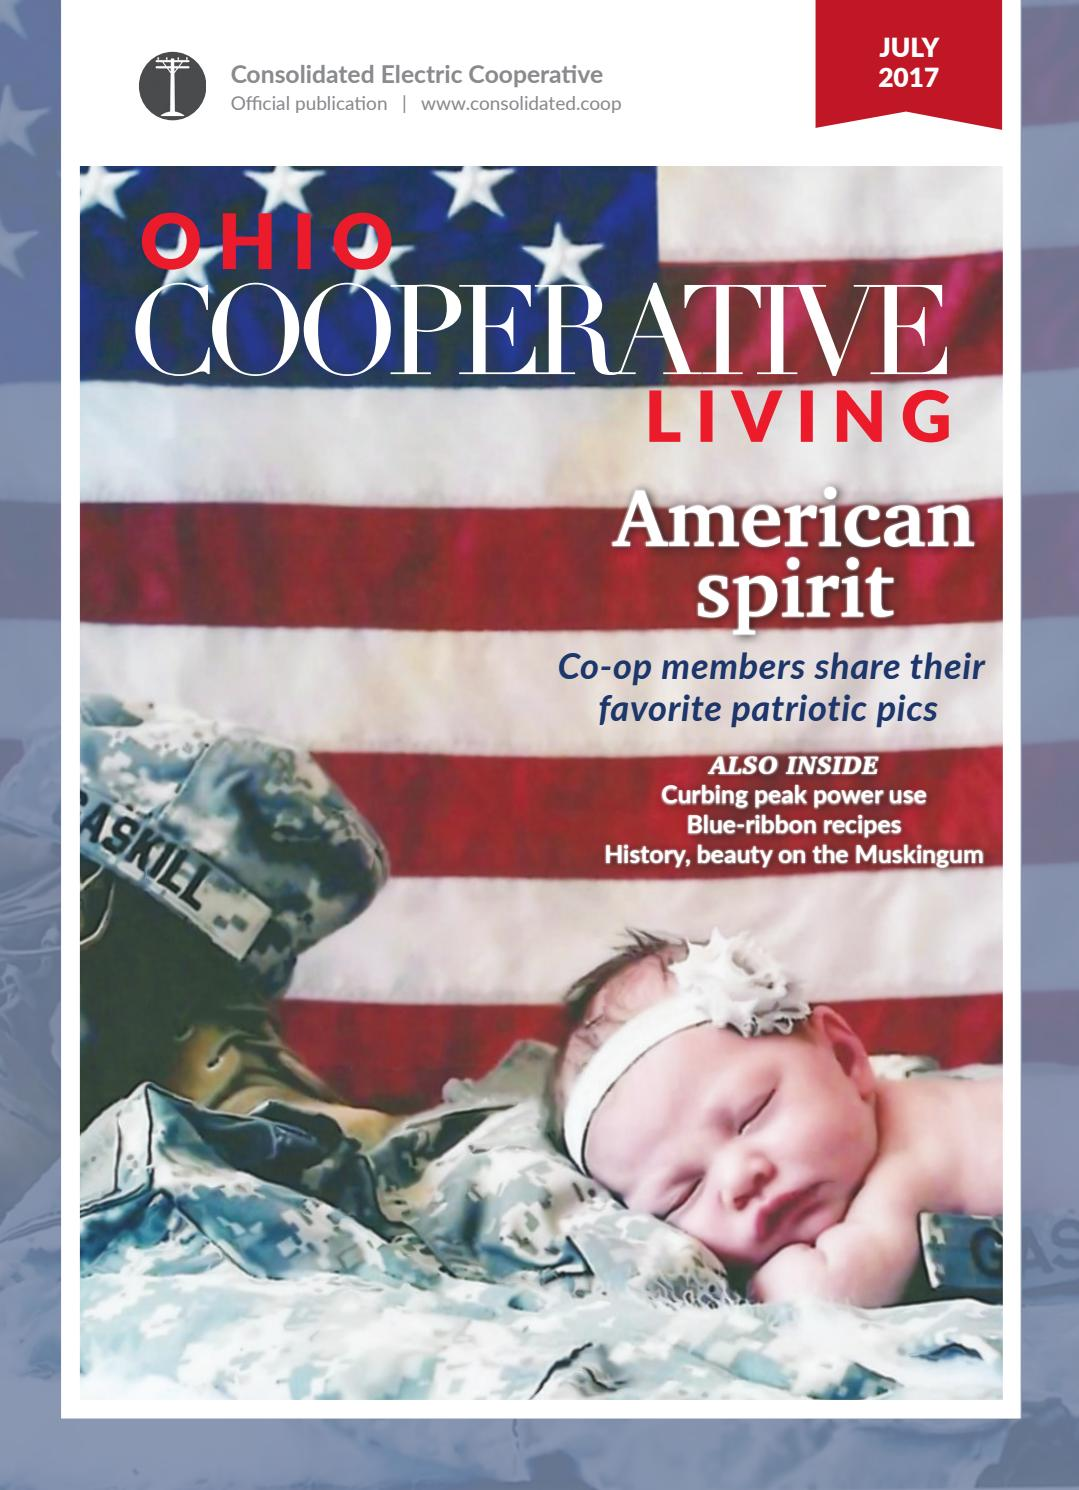 Ohio Cooperative Living July 2017 Consolidated By Ohio